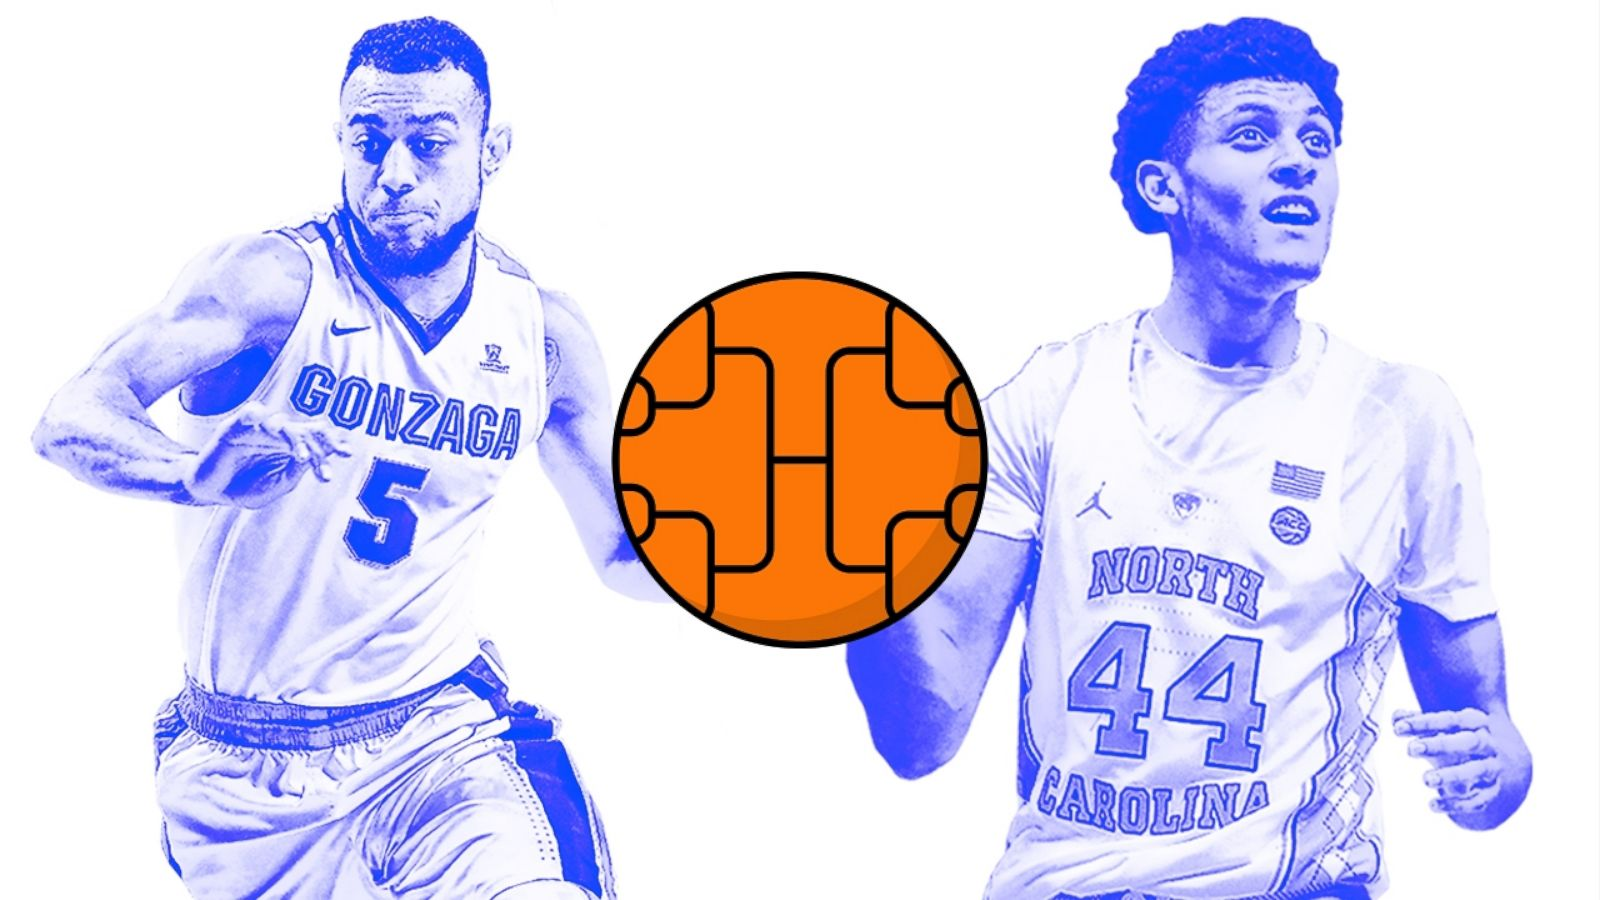 Gonzaga Has The Numbers, But UNC Has The Pedigree